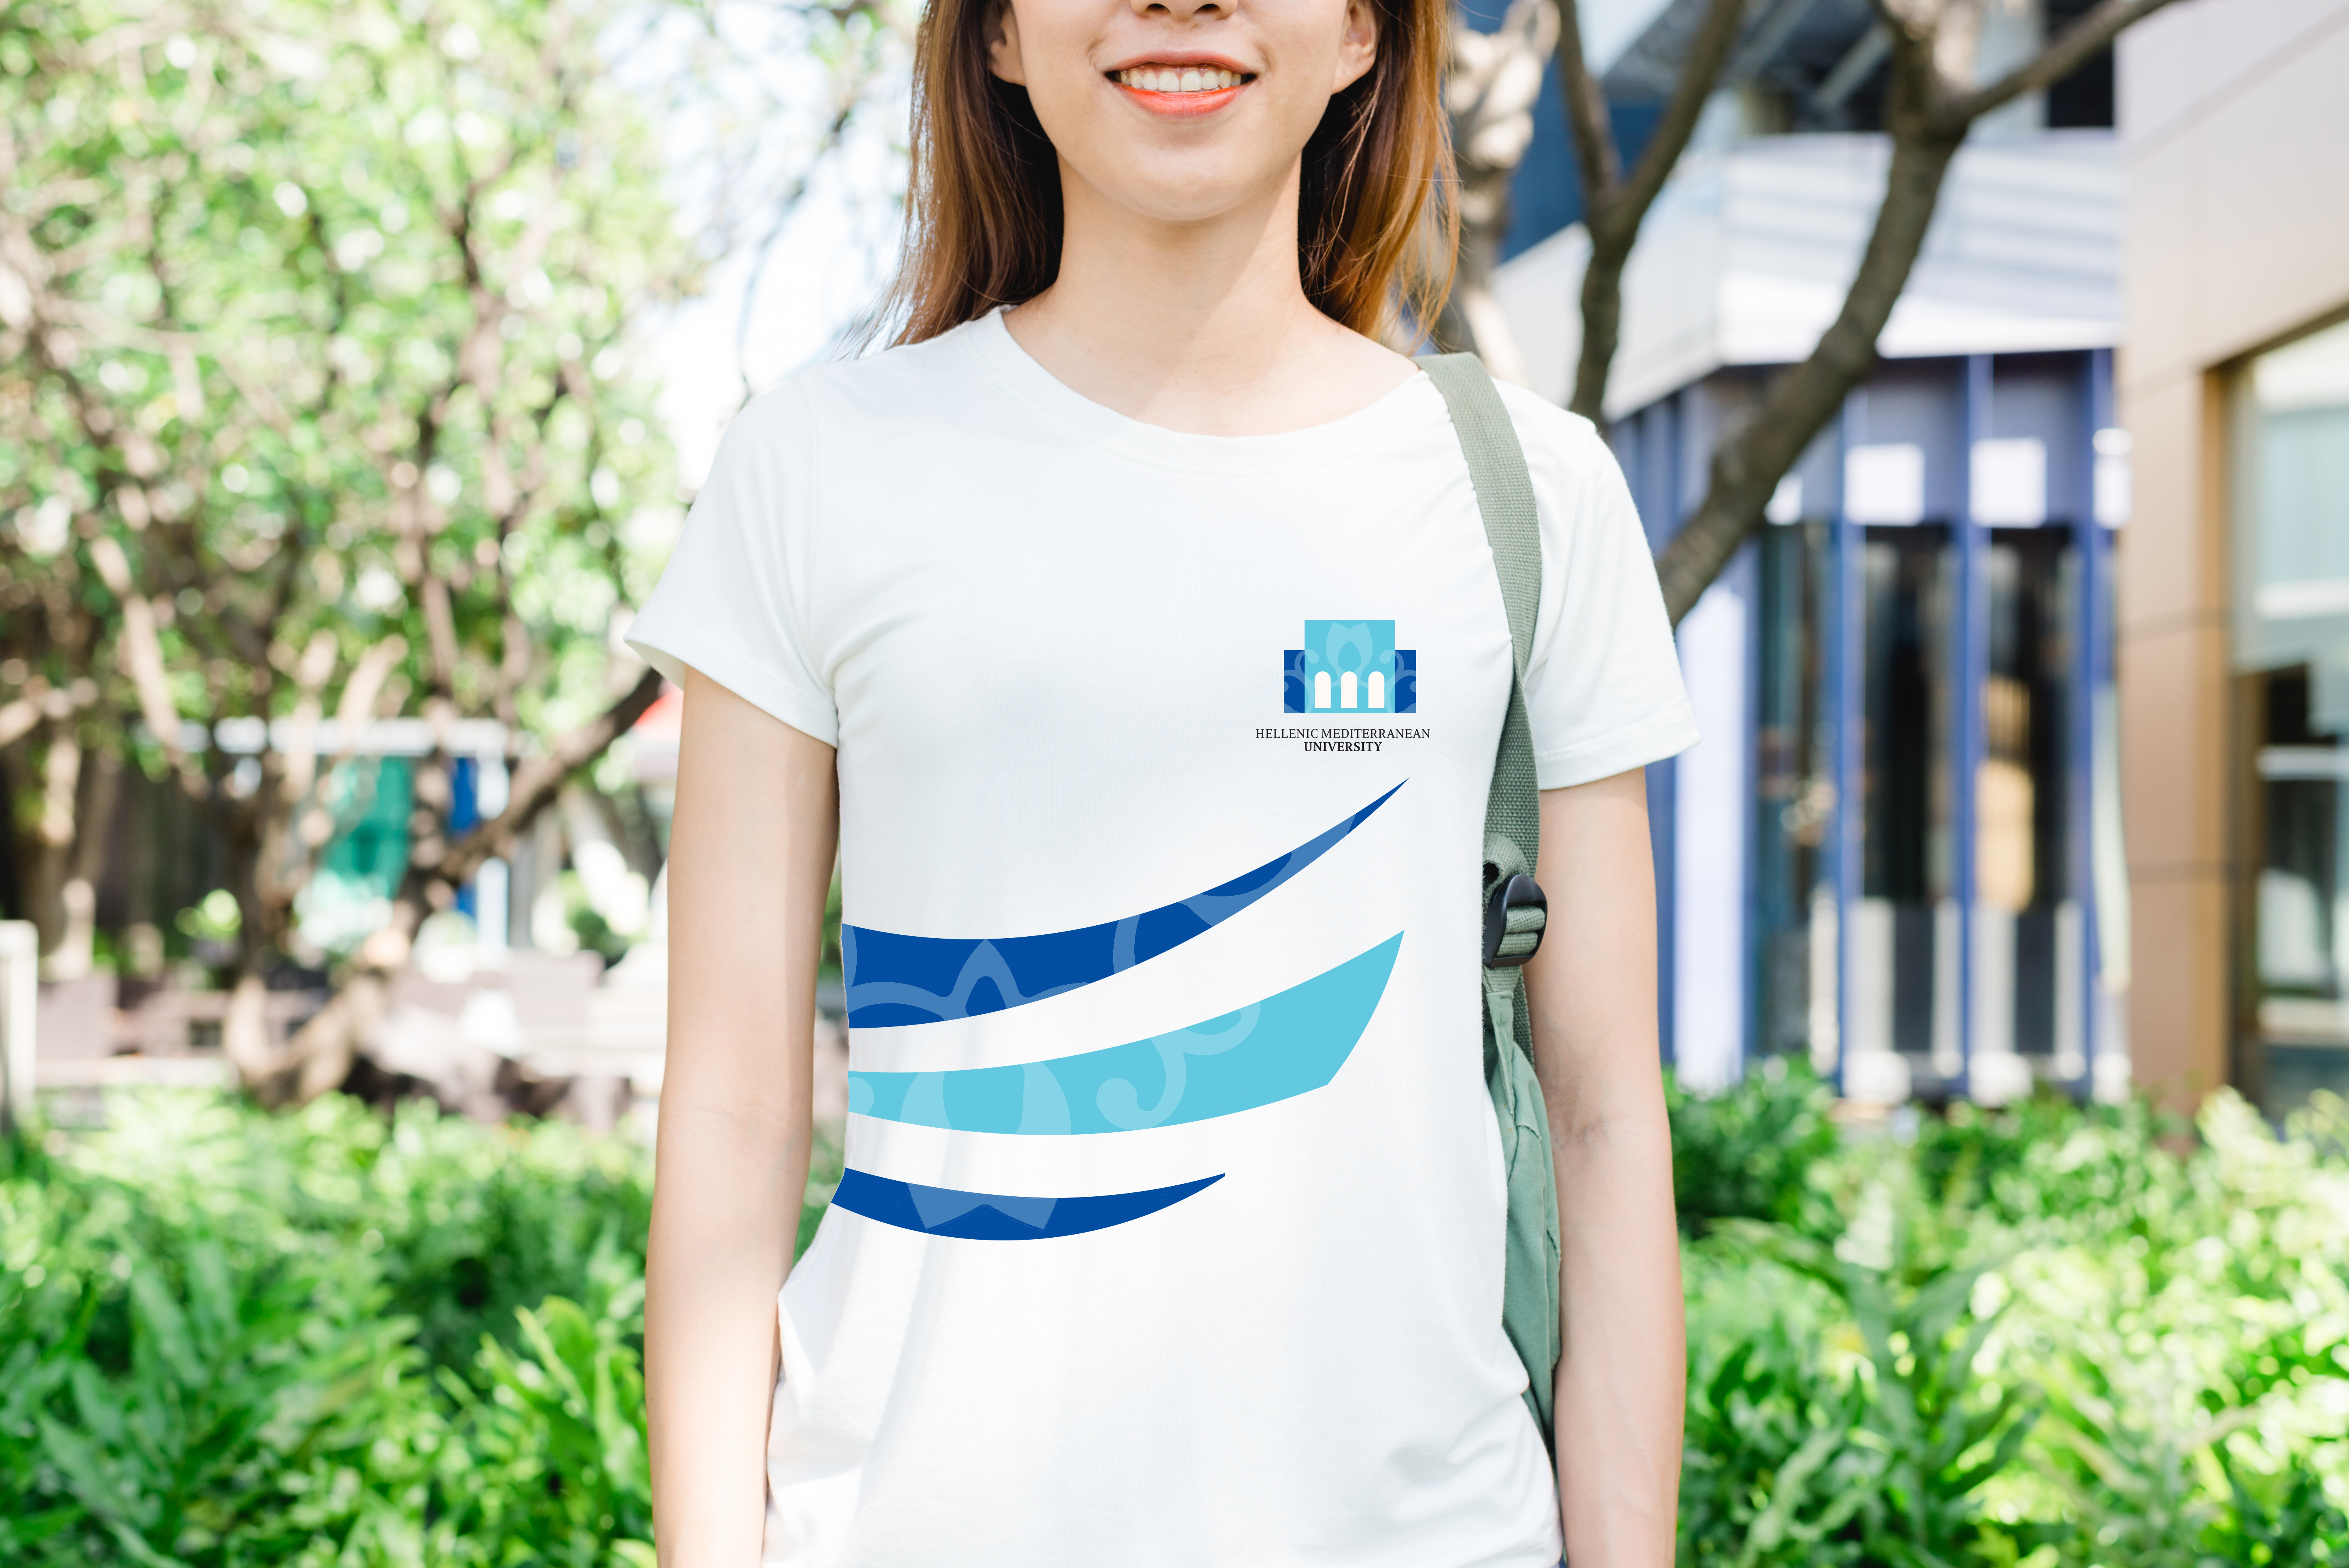 Logo applied on t-shirt